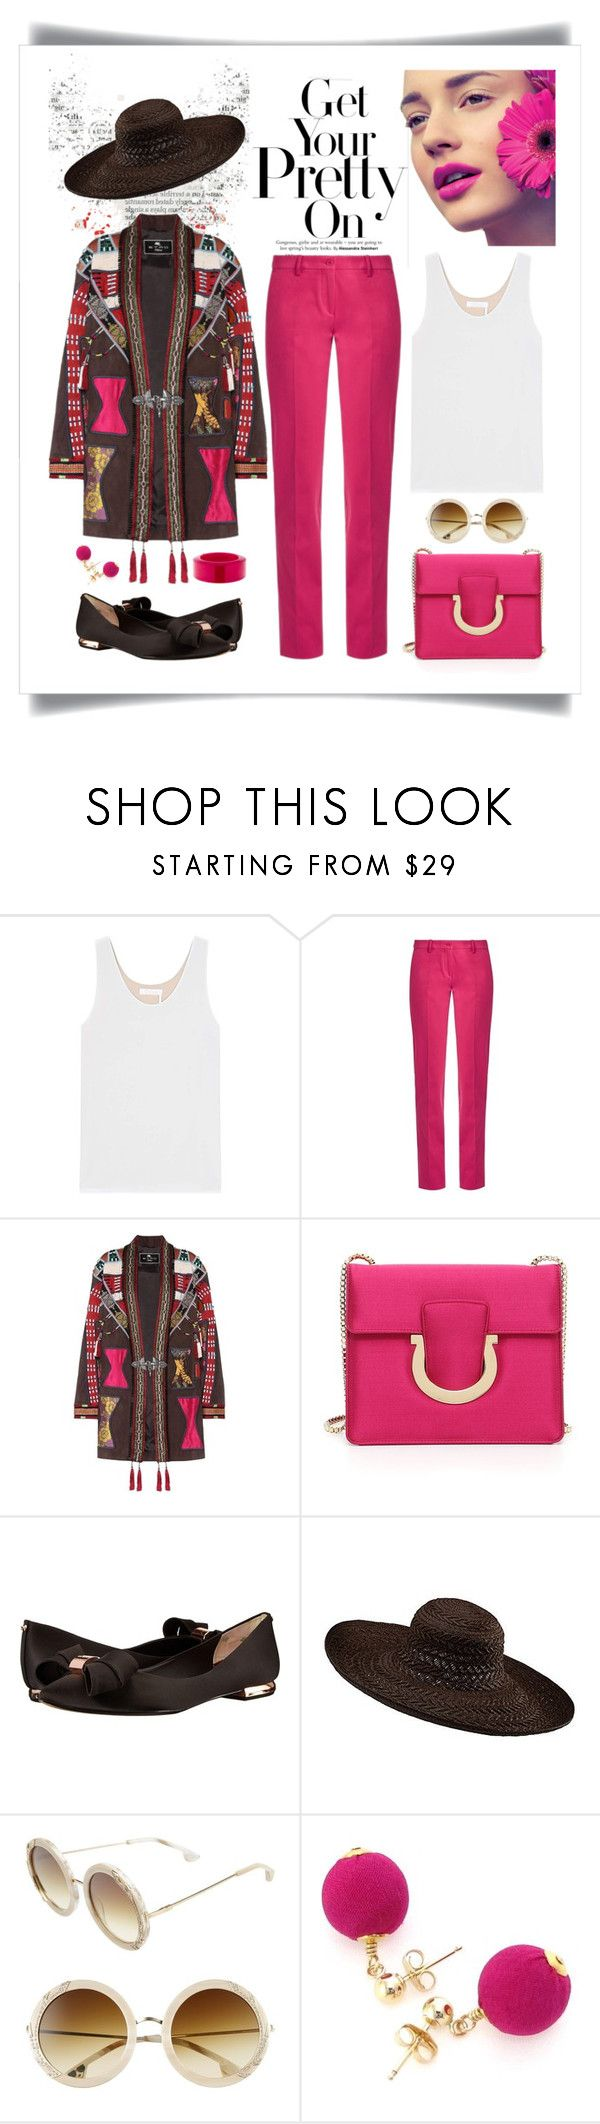 """""""Etro Embellished Leather Jacket Look"""" by romaboots-1 ❤ liked on Polyvore featuring Chloé, Etro, Salvatore Ferragamo, Ted Baker, Brooks, Alice + Olivia, Dorus Mhor and Lanvin"""